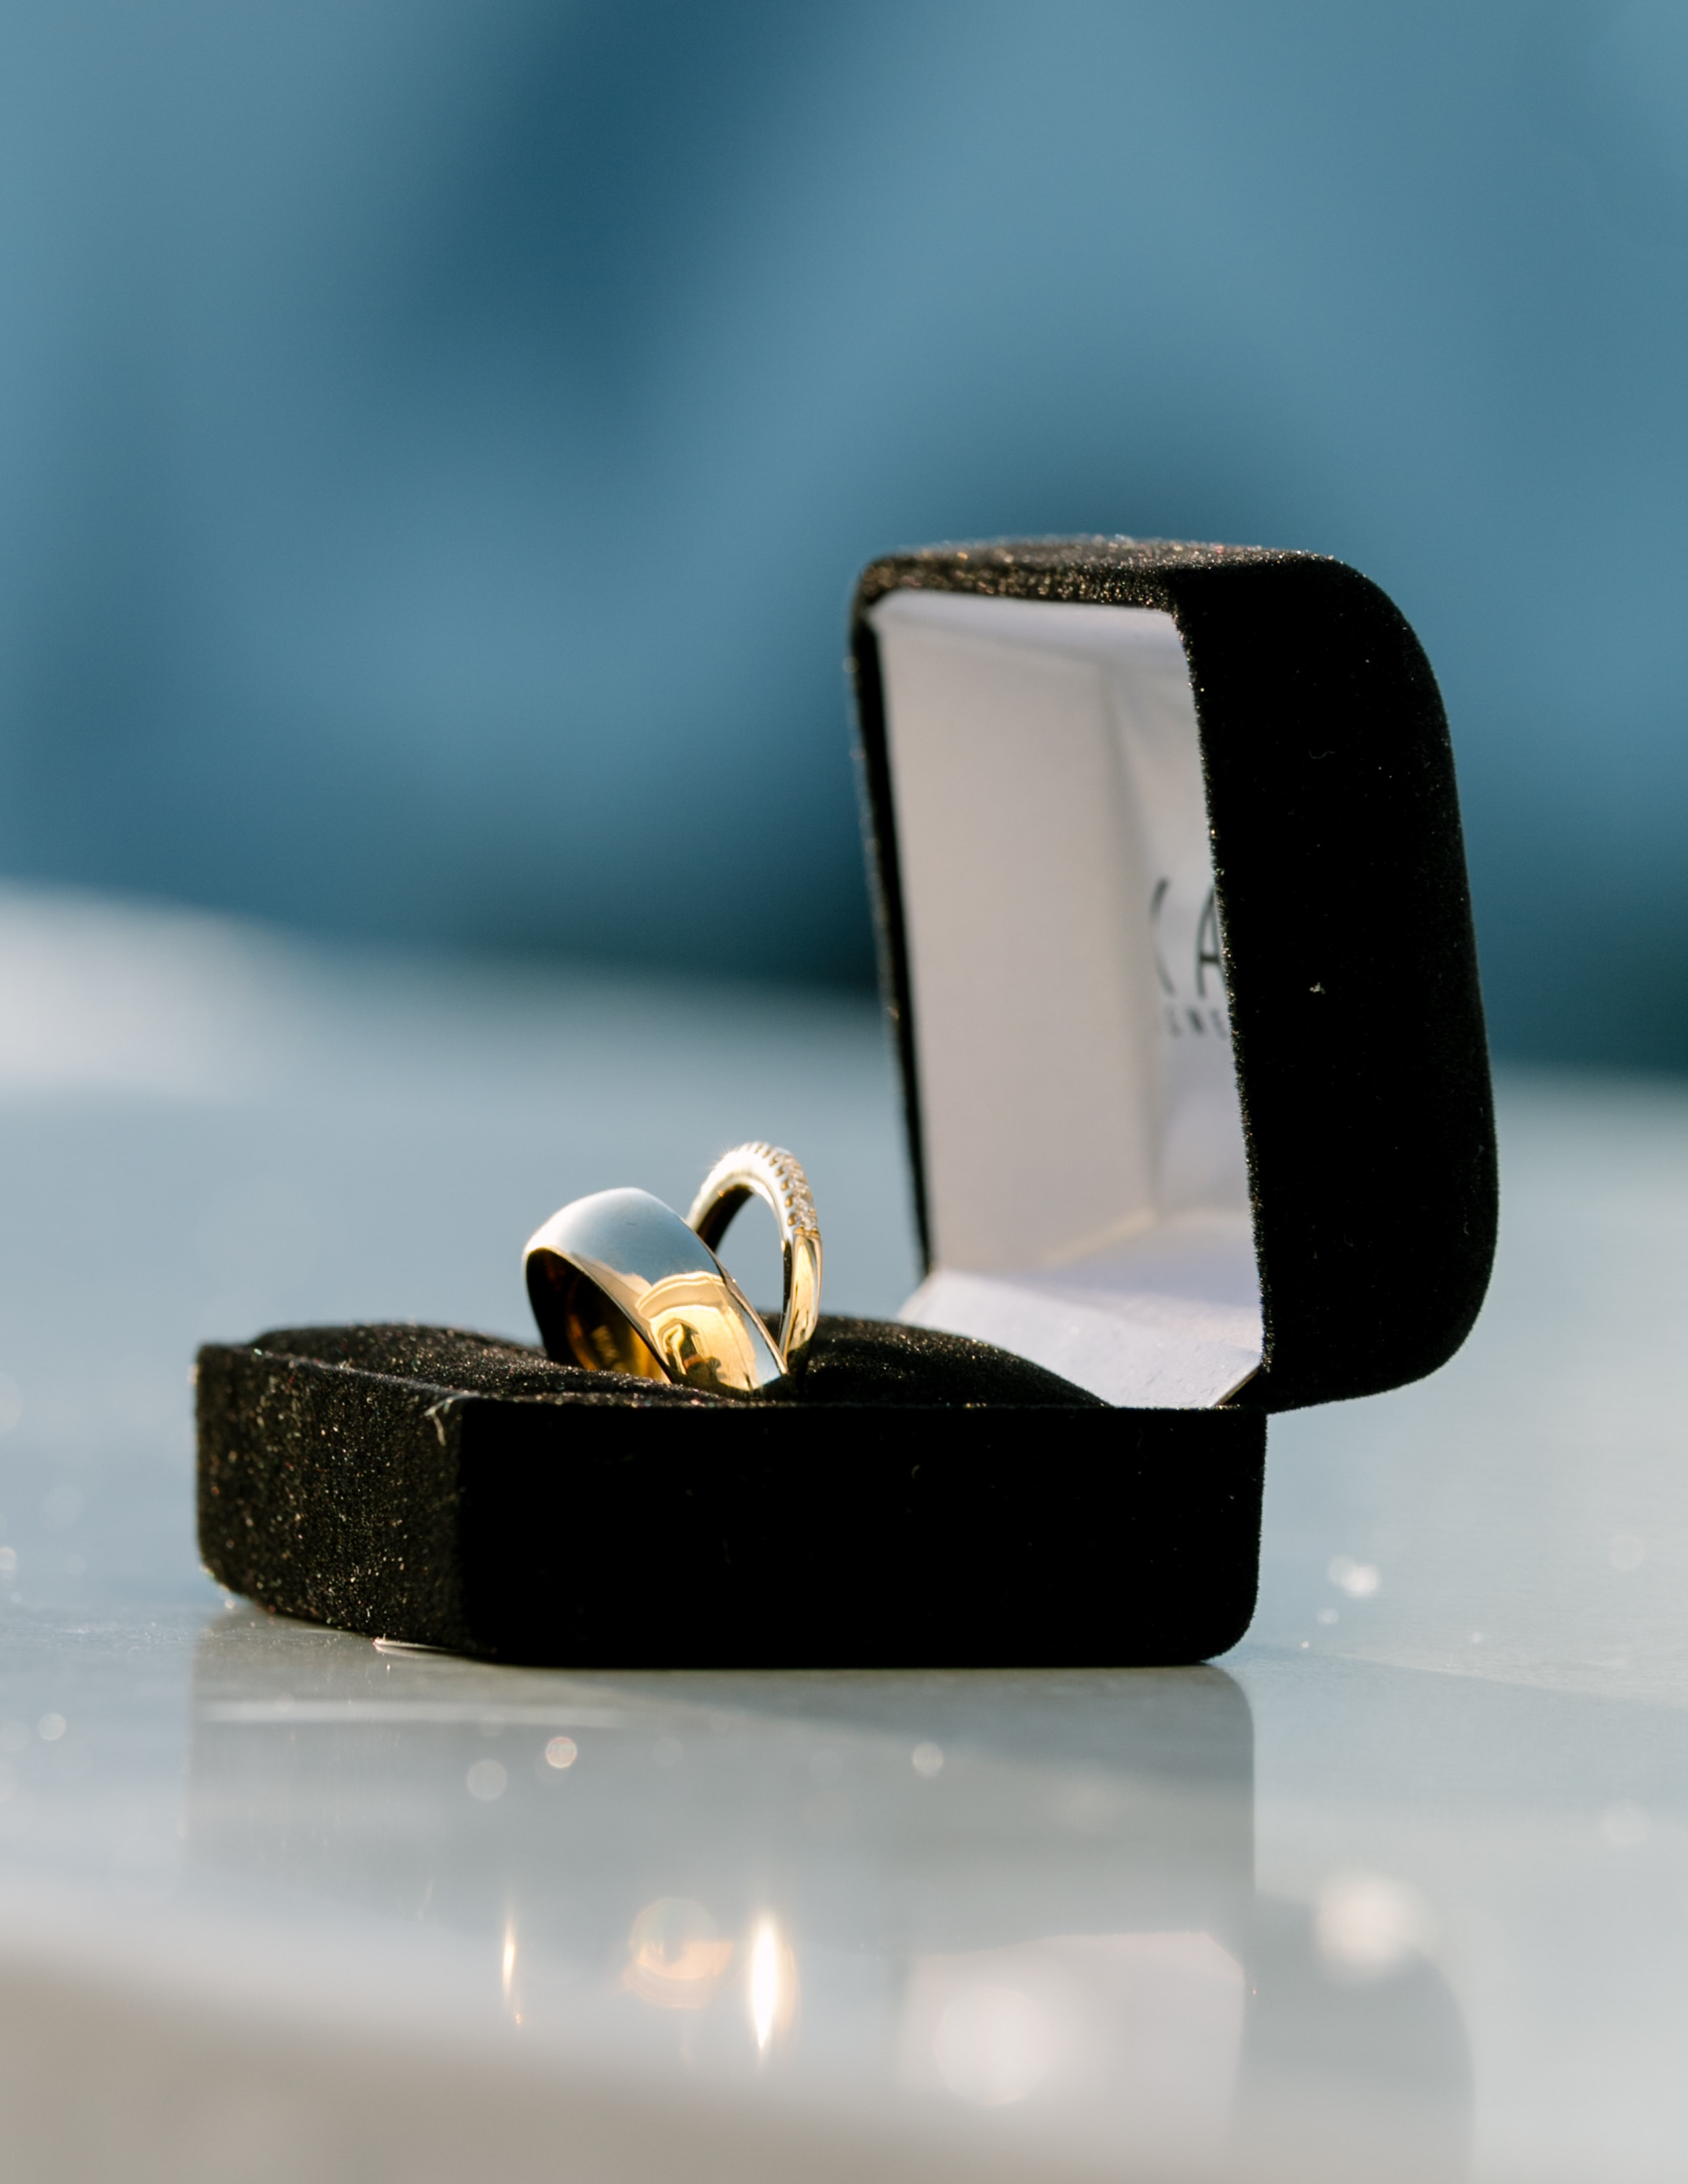 silver-colored bridal ring set on box on top of white surface